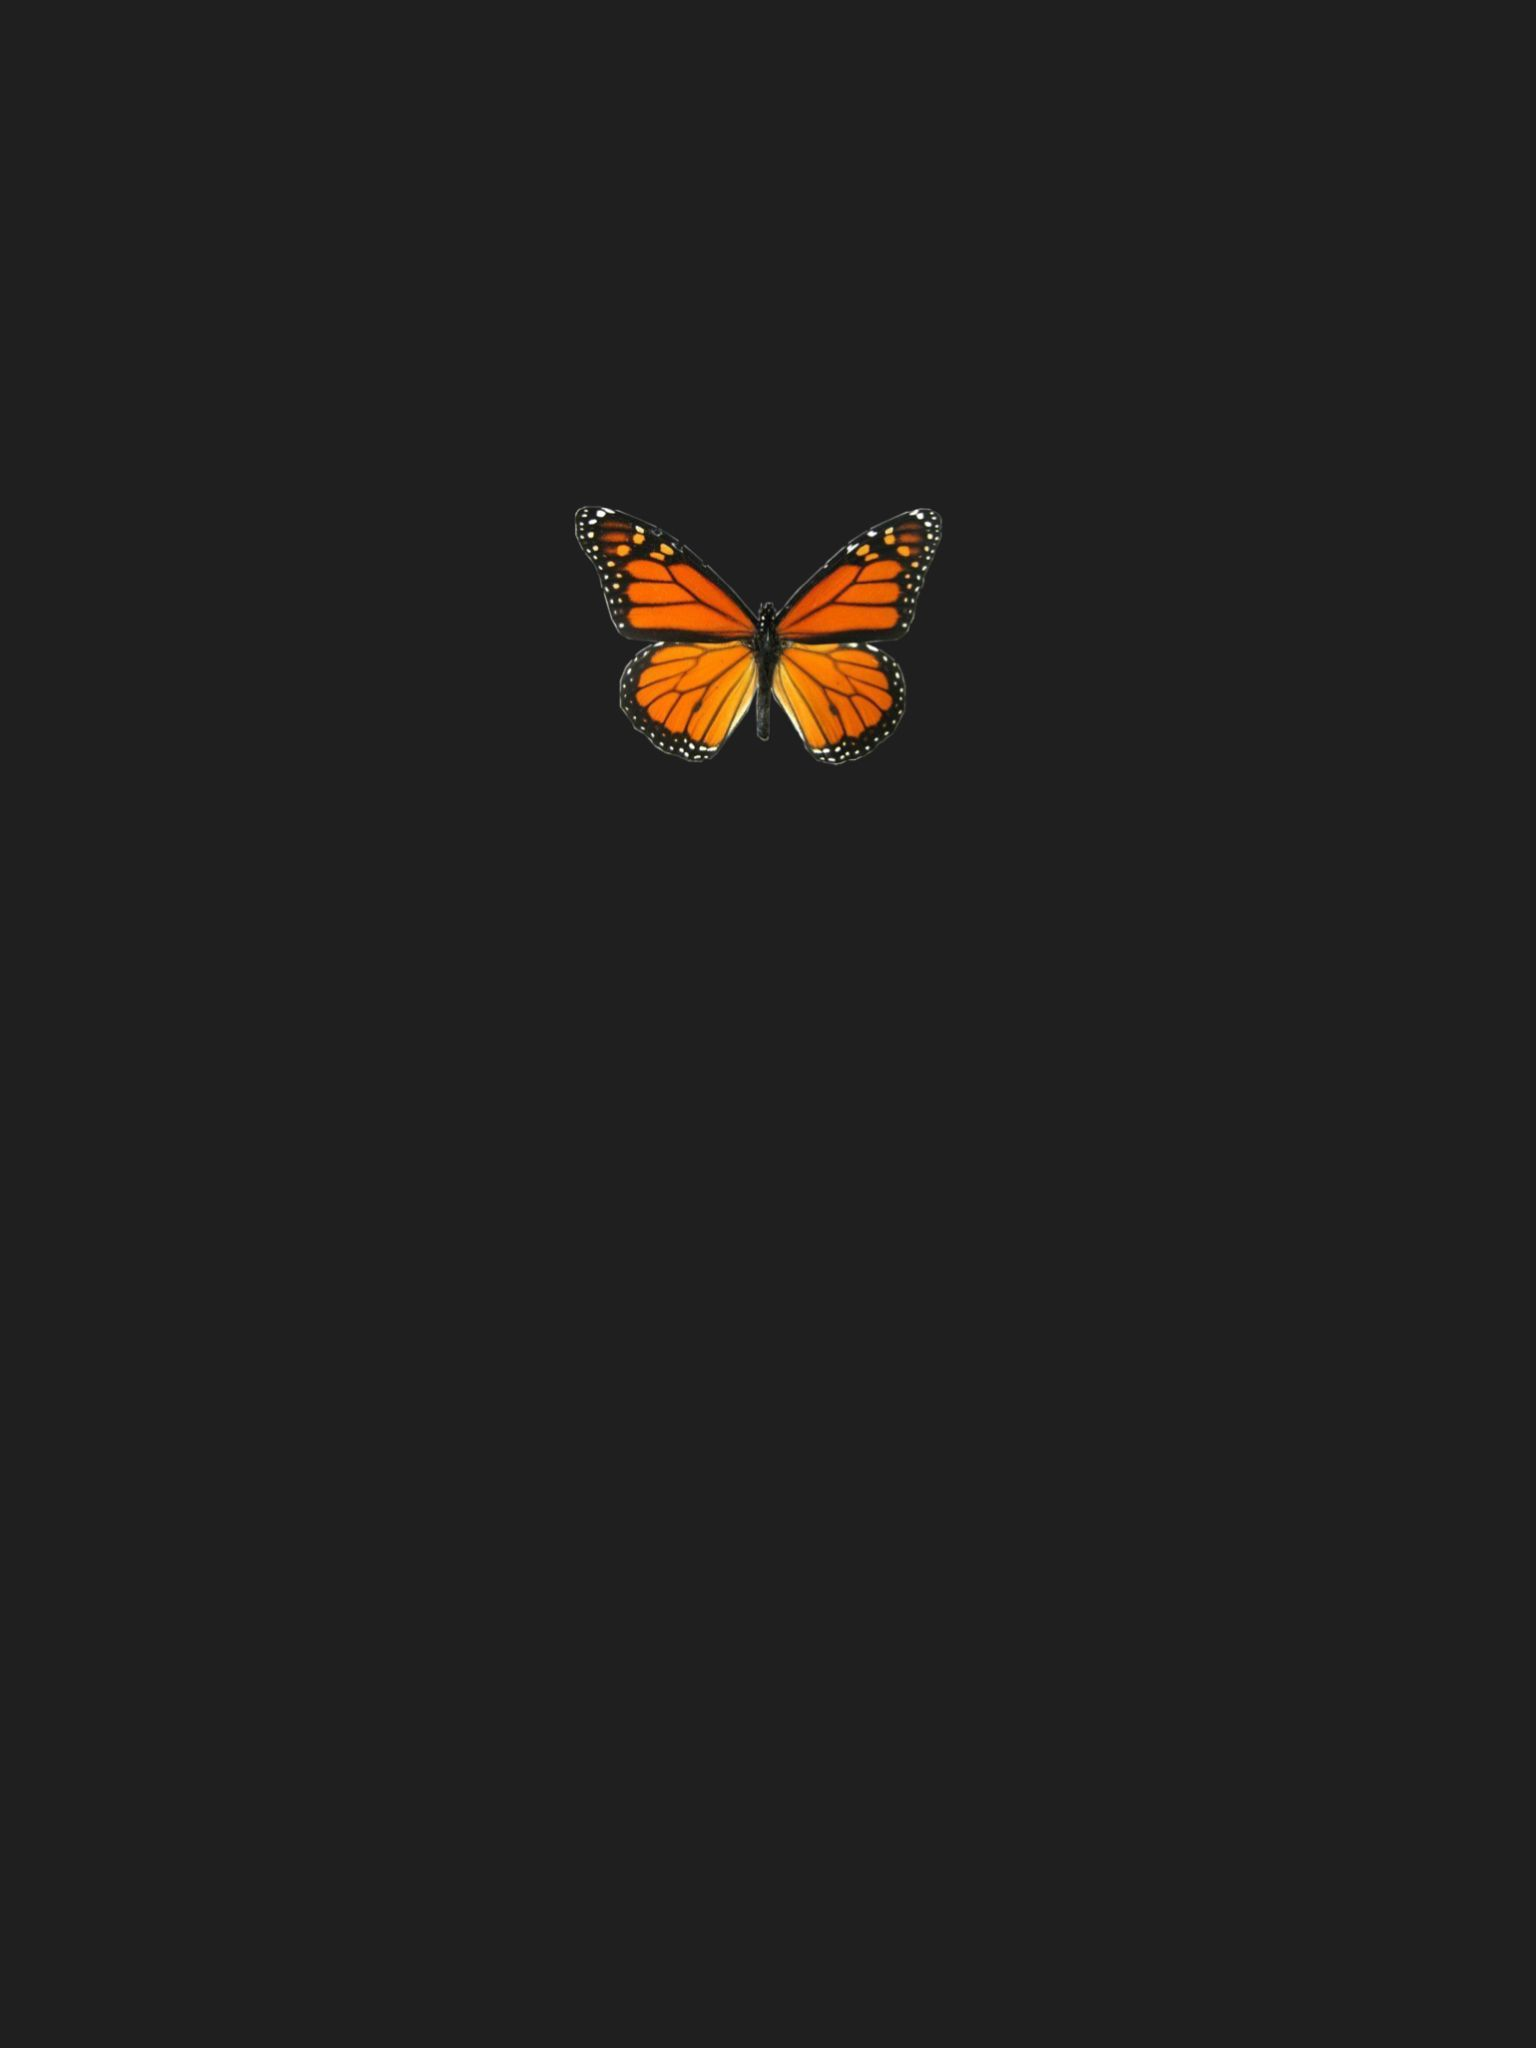 Butterfly Tumblr In 2020 Butterfly Wallpaper Iphone Iphone Wallpaper Vsco Aesthetic Iphone Wallpaper